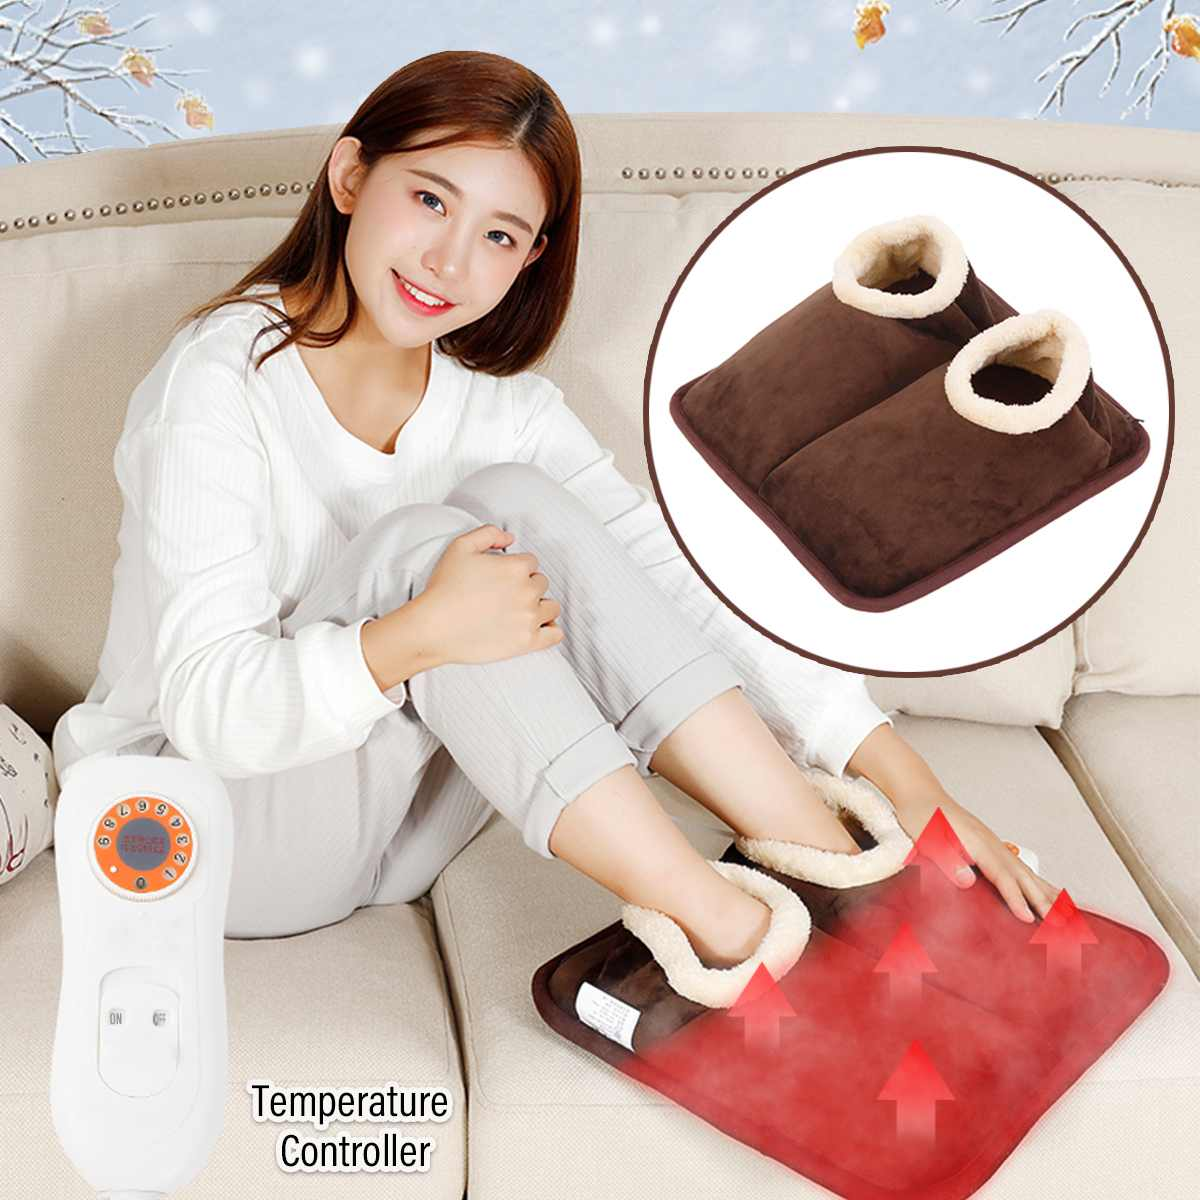 Winter Electric Feet Hand Heating Pad Warmer Heater 9 Gear Home Office Washable Electric Heat Slipper Heating Shoes BrownWinter Electric Feet Hand Heating Pad Warmer Heater 9 Gear Home Office Washable Electric Heat Slipper Heating Shoes Brown